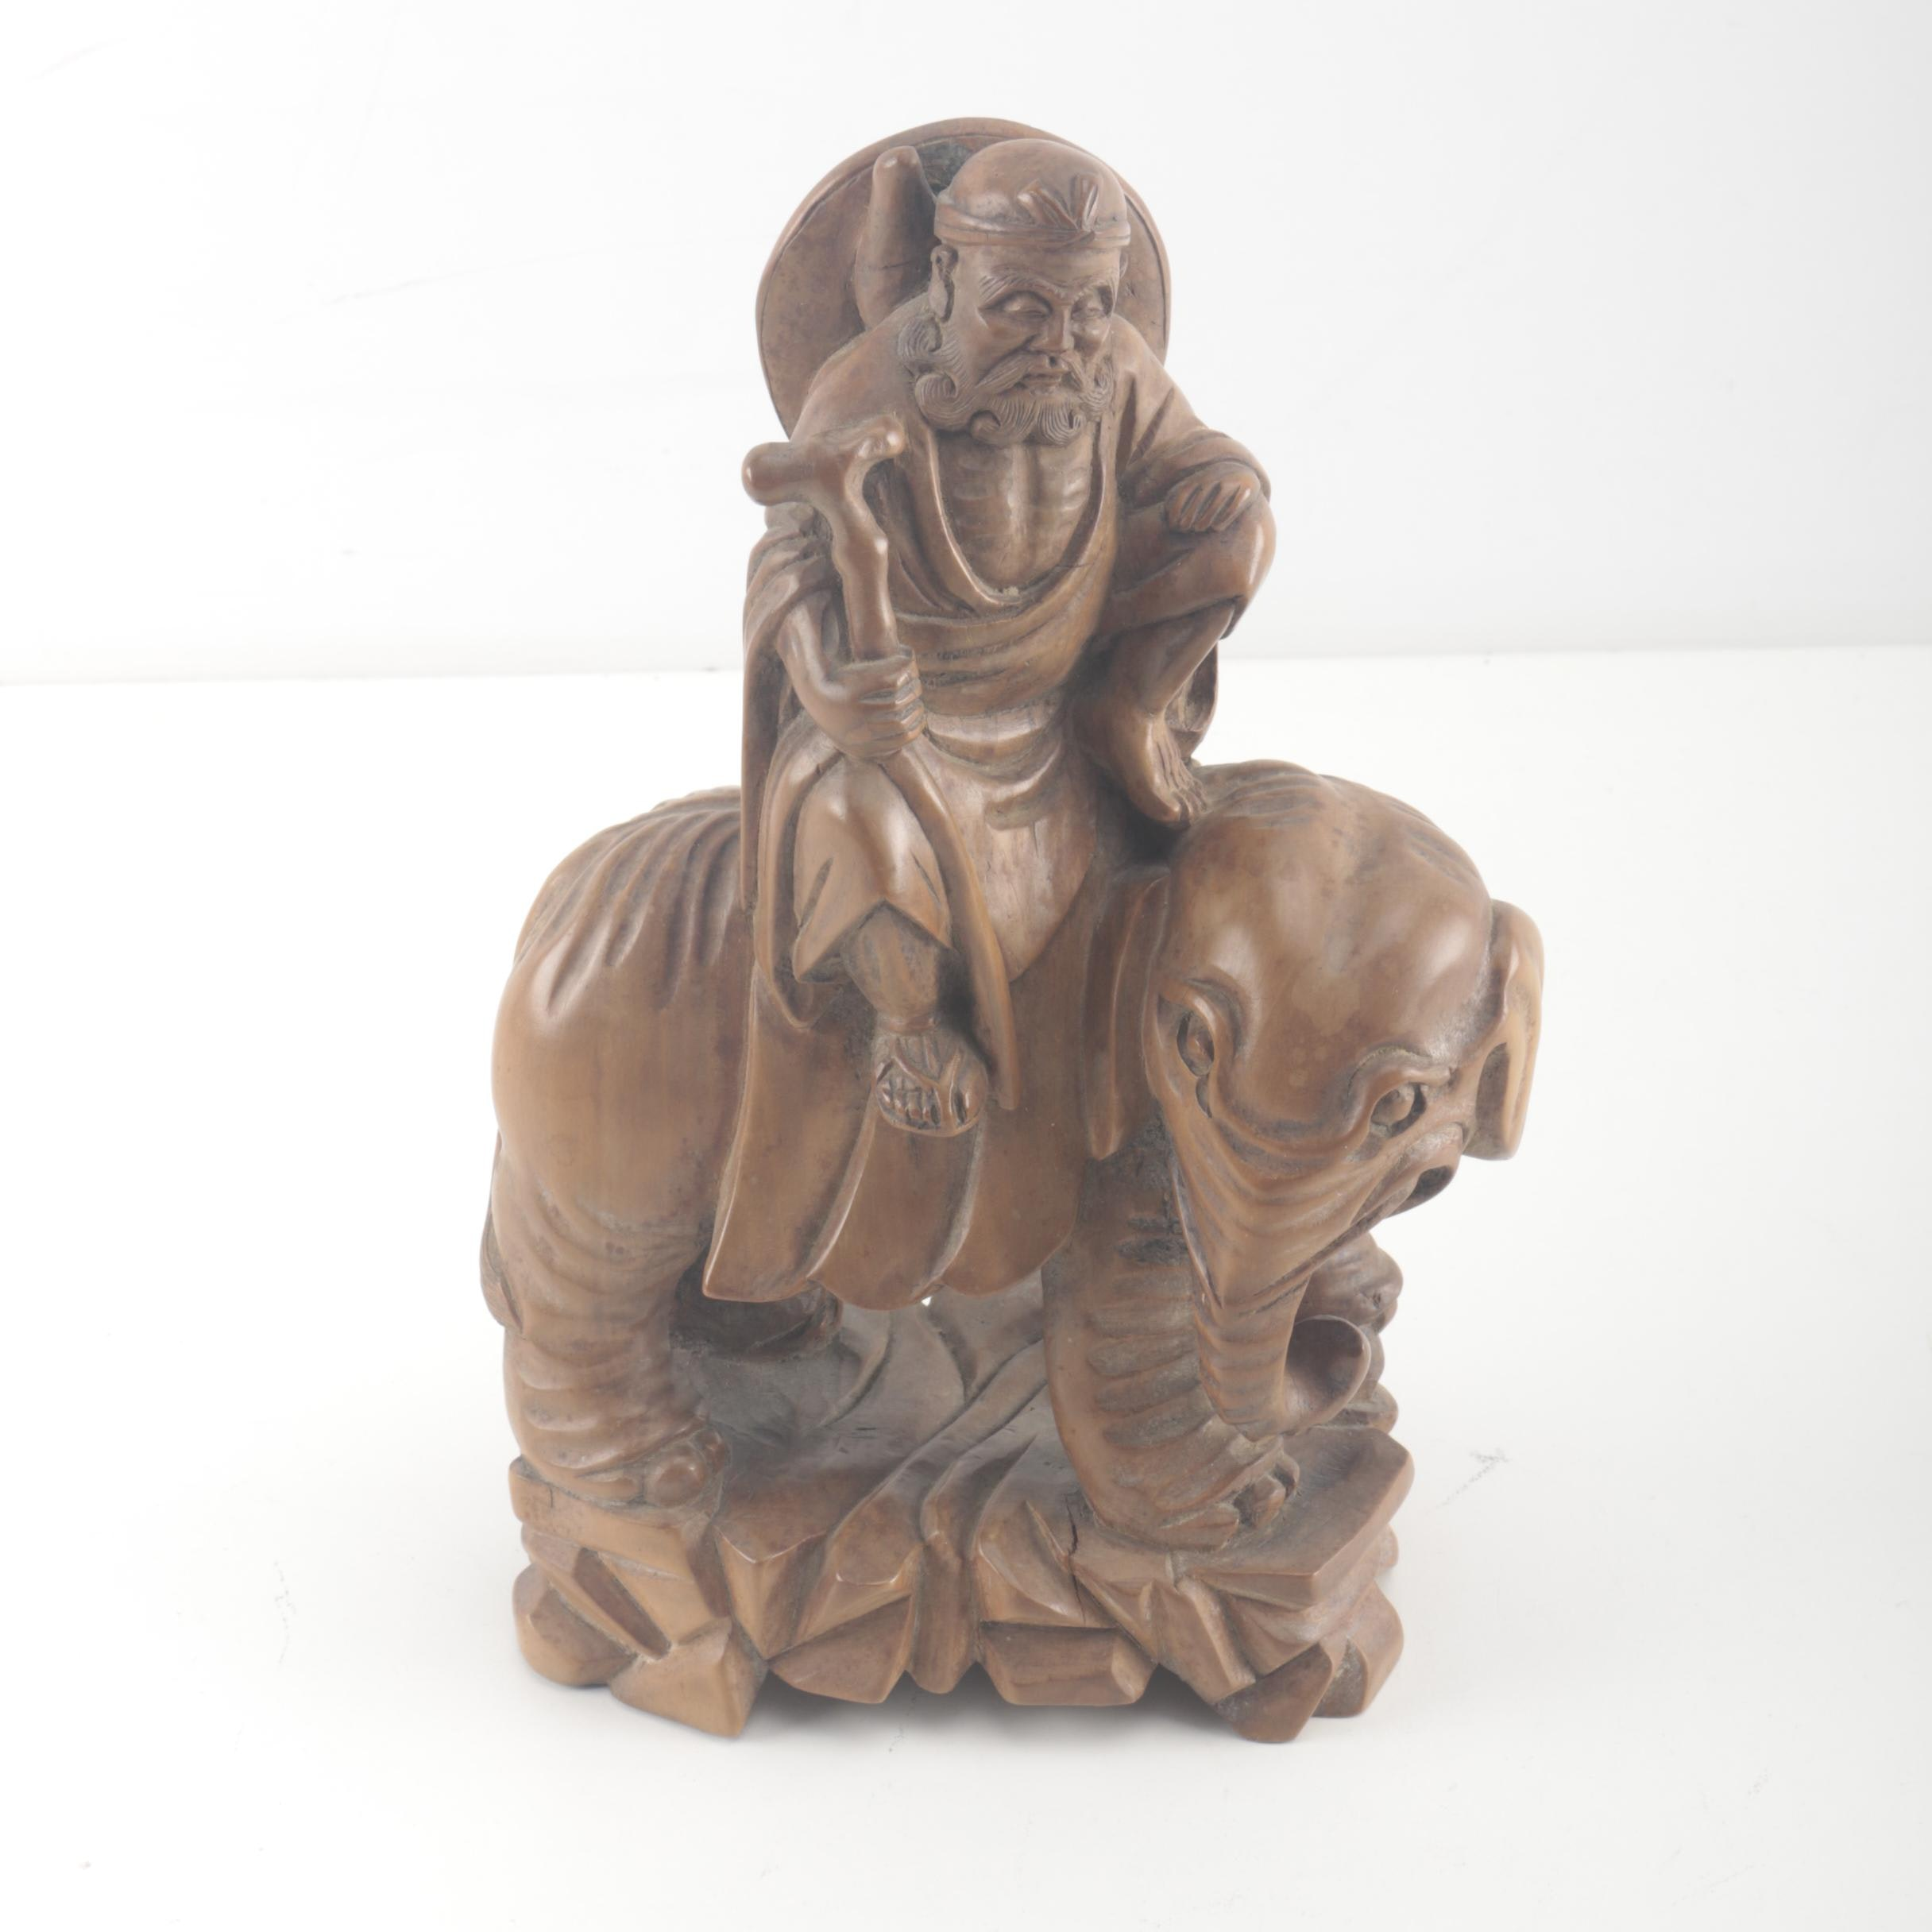 Chinese Carved Wooden Sculpture of a Luohan Riding an Elephant